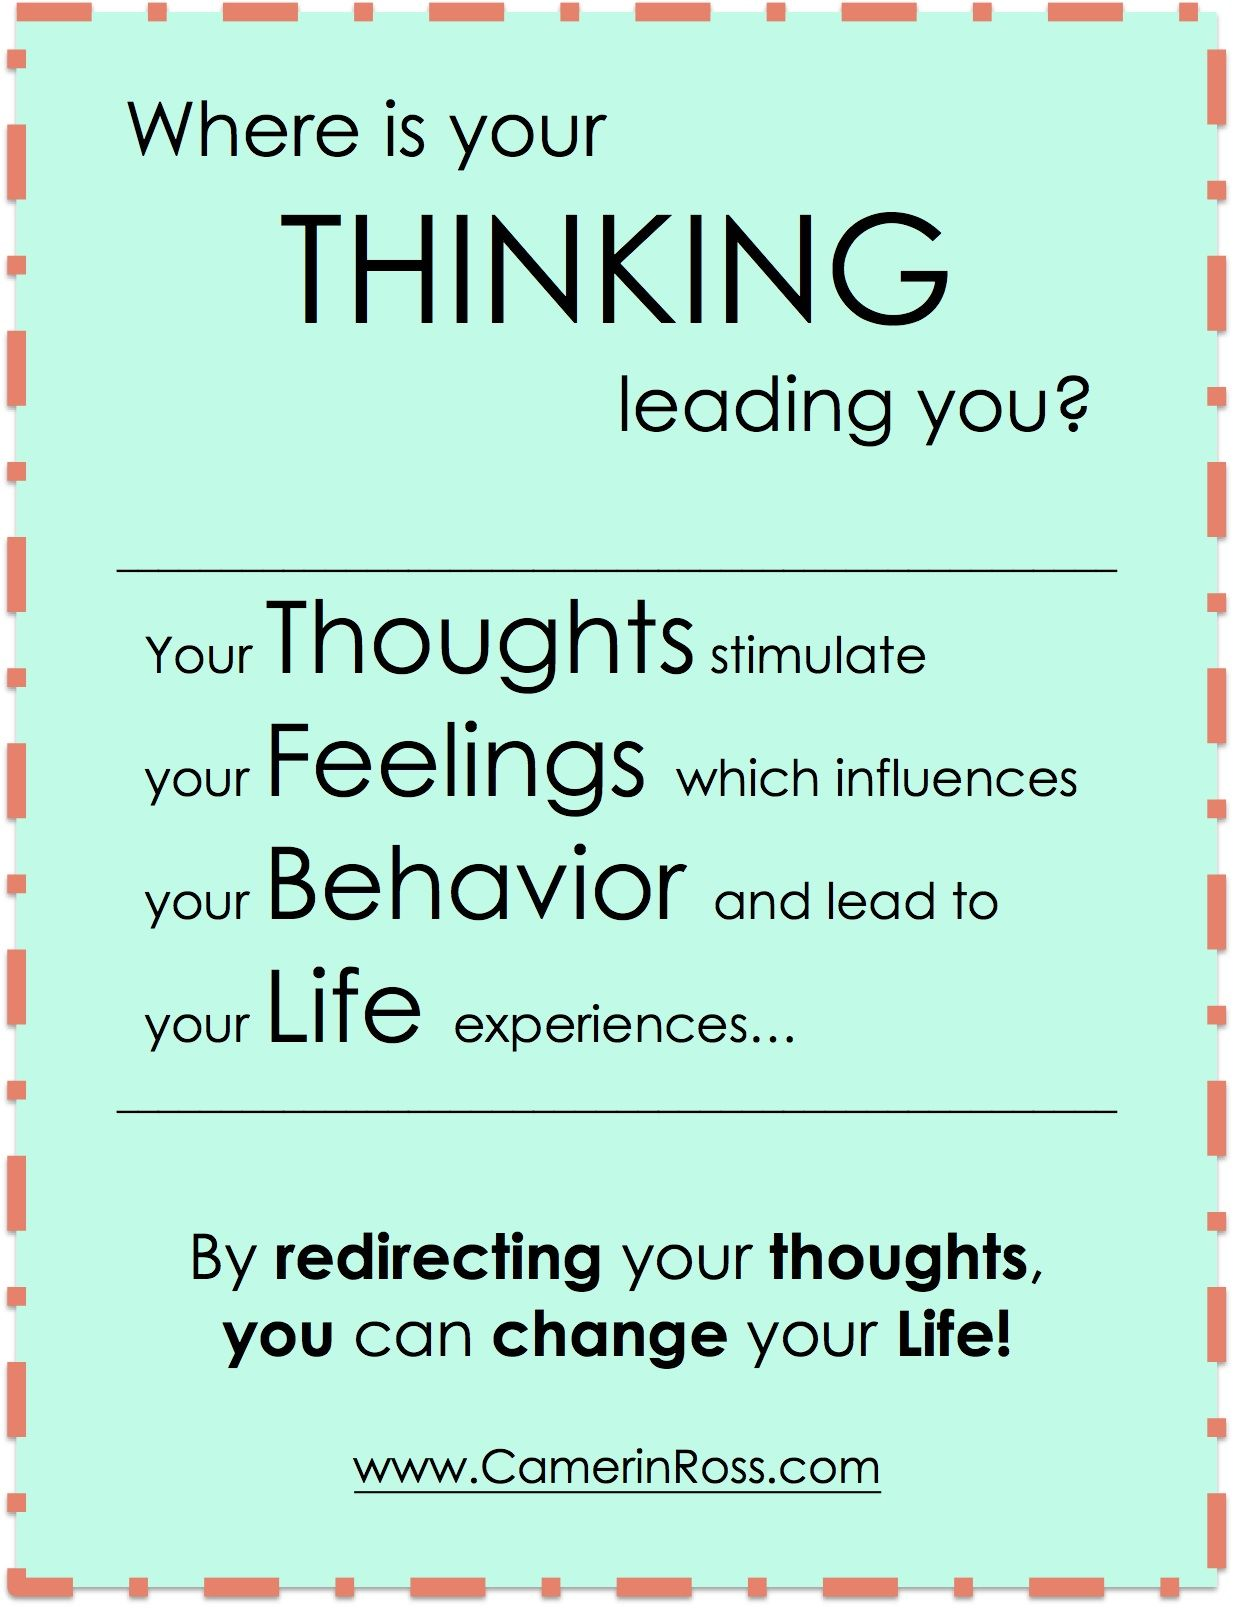 Where Is Your Thinking Leading You By Redirecting Your Thoughts You Can Change Your Life By